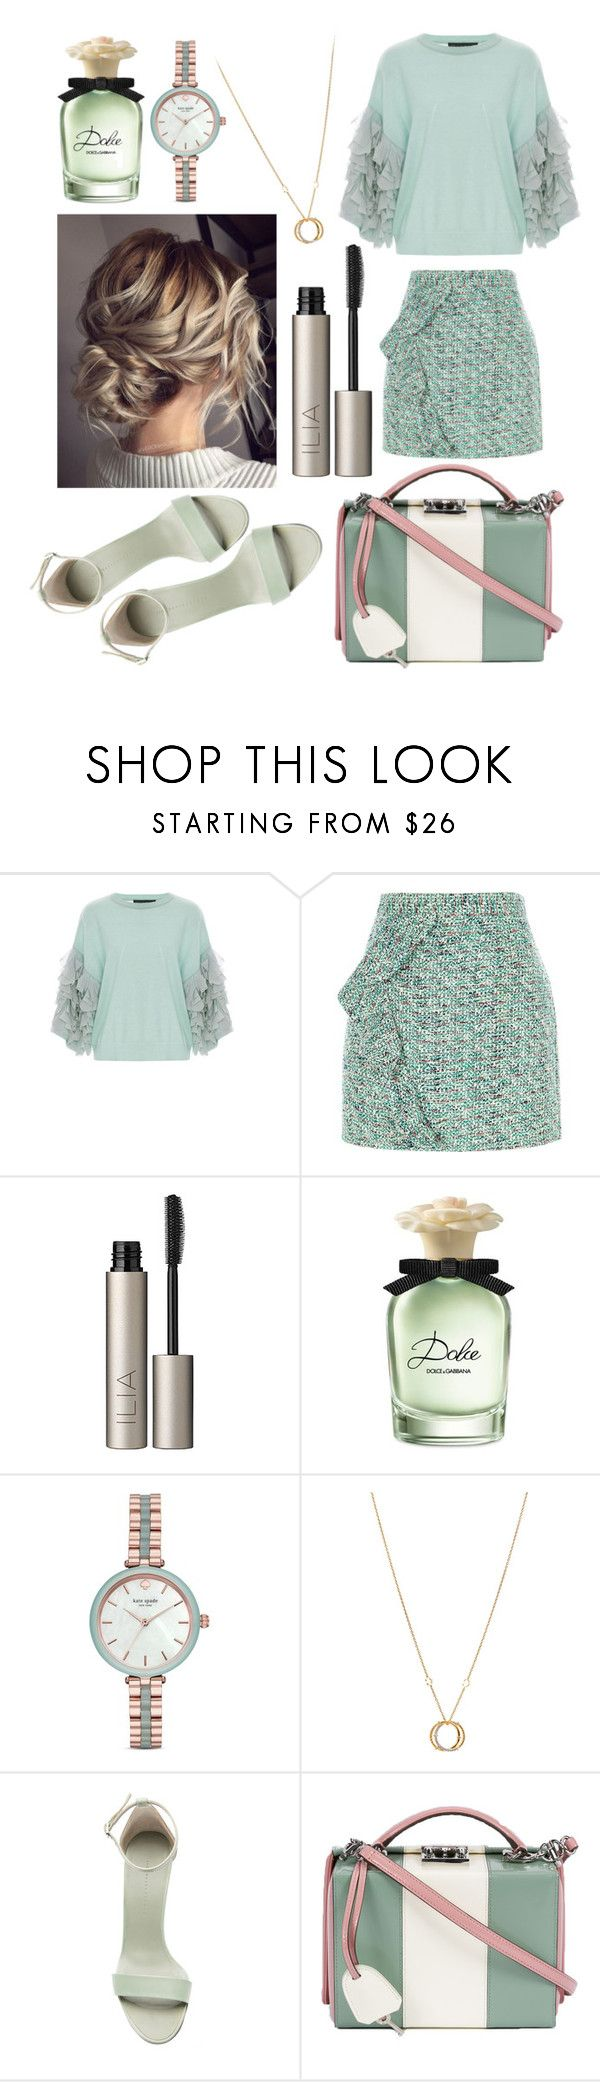 """🍸"" by dilya-kadyrova ❤ liked on Polyvore featuring Tabula Rasa, River Island, Ilia, Dolce&Gabbana, Kate Spade, Charriol, Victoria Beckham and Mark Cross"